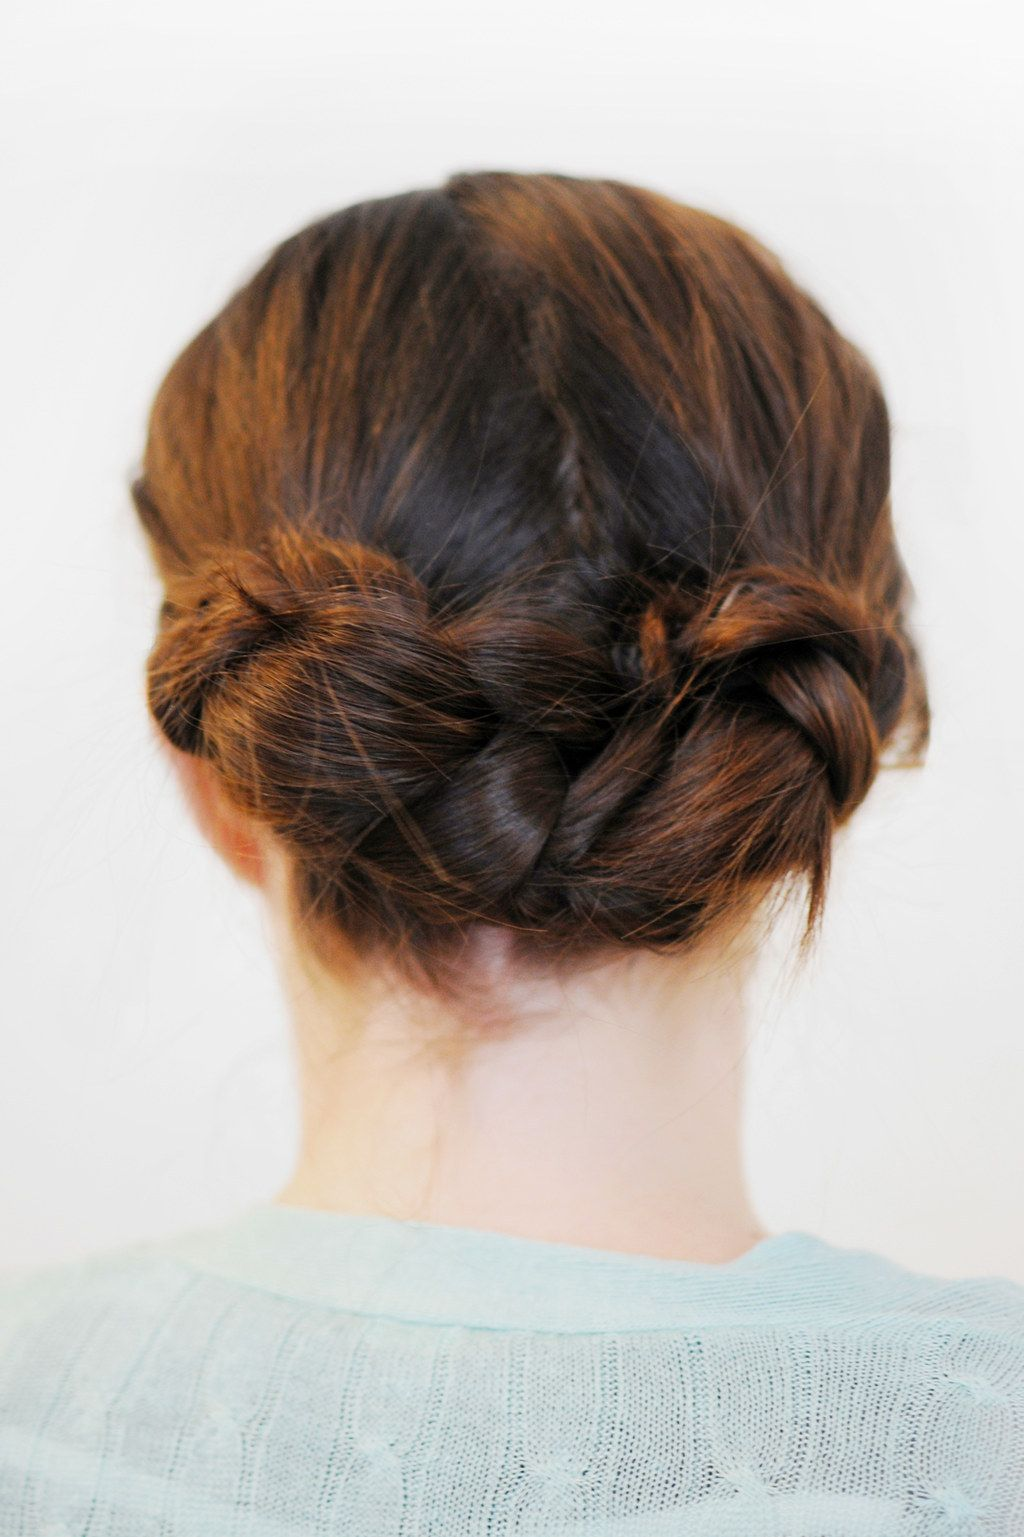 35+ Up do hairstyles for work trends